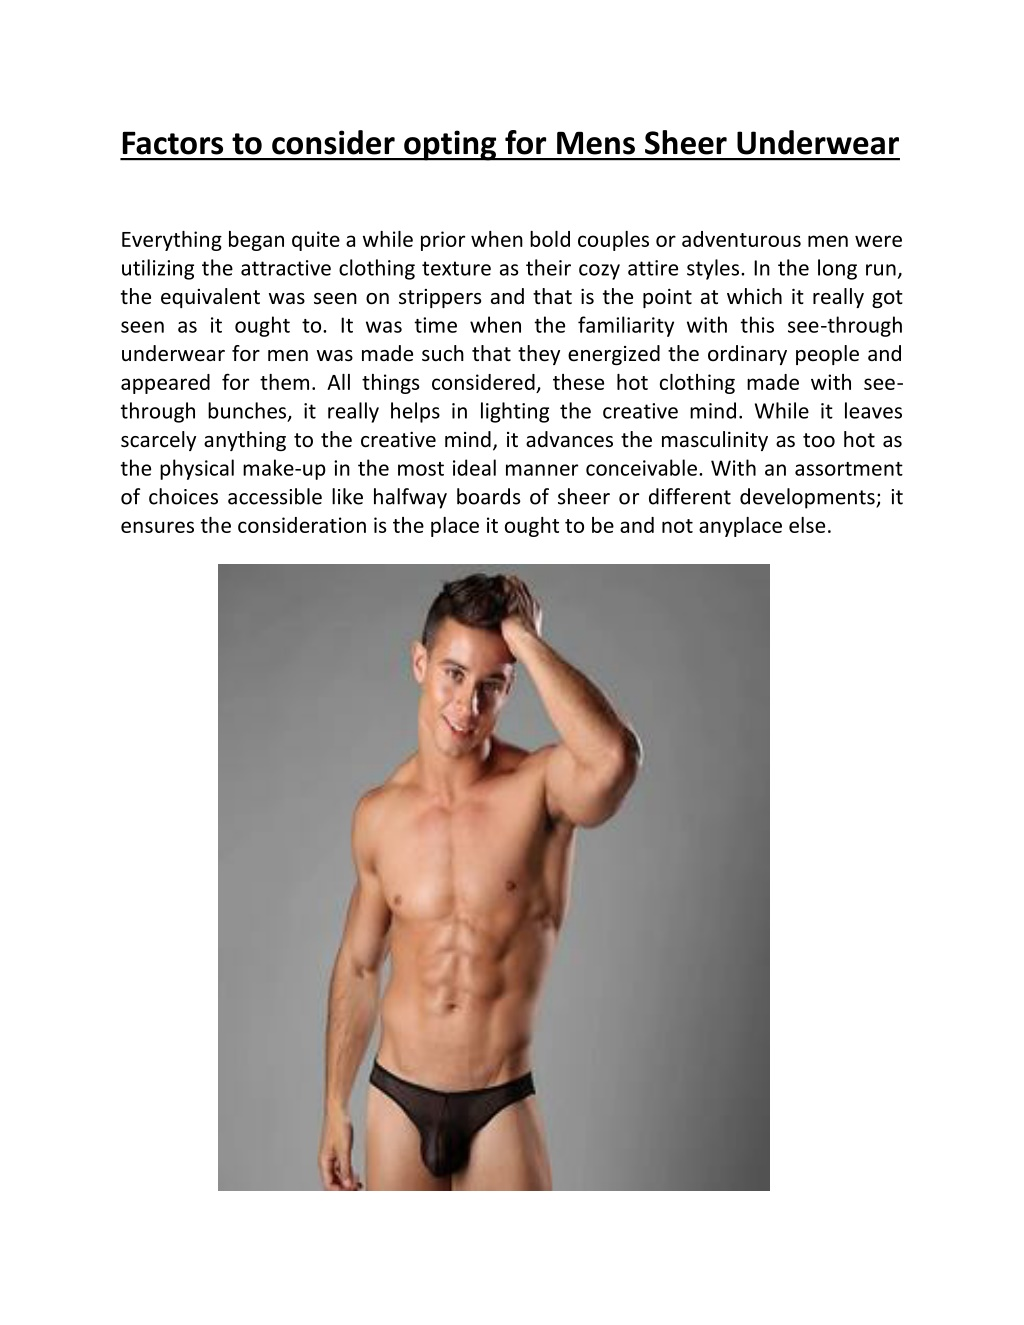 Factors to consider opting for Mens Sheer Underwear